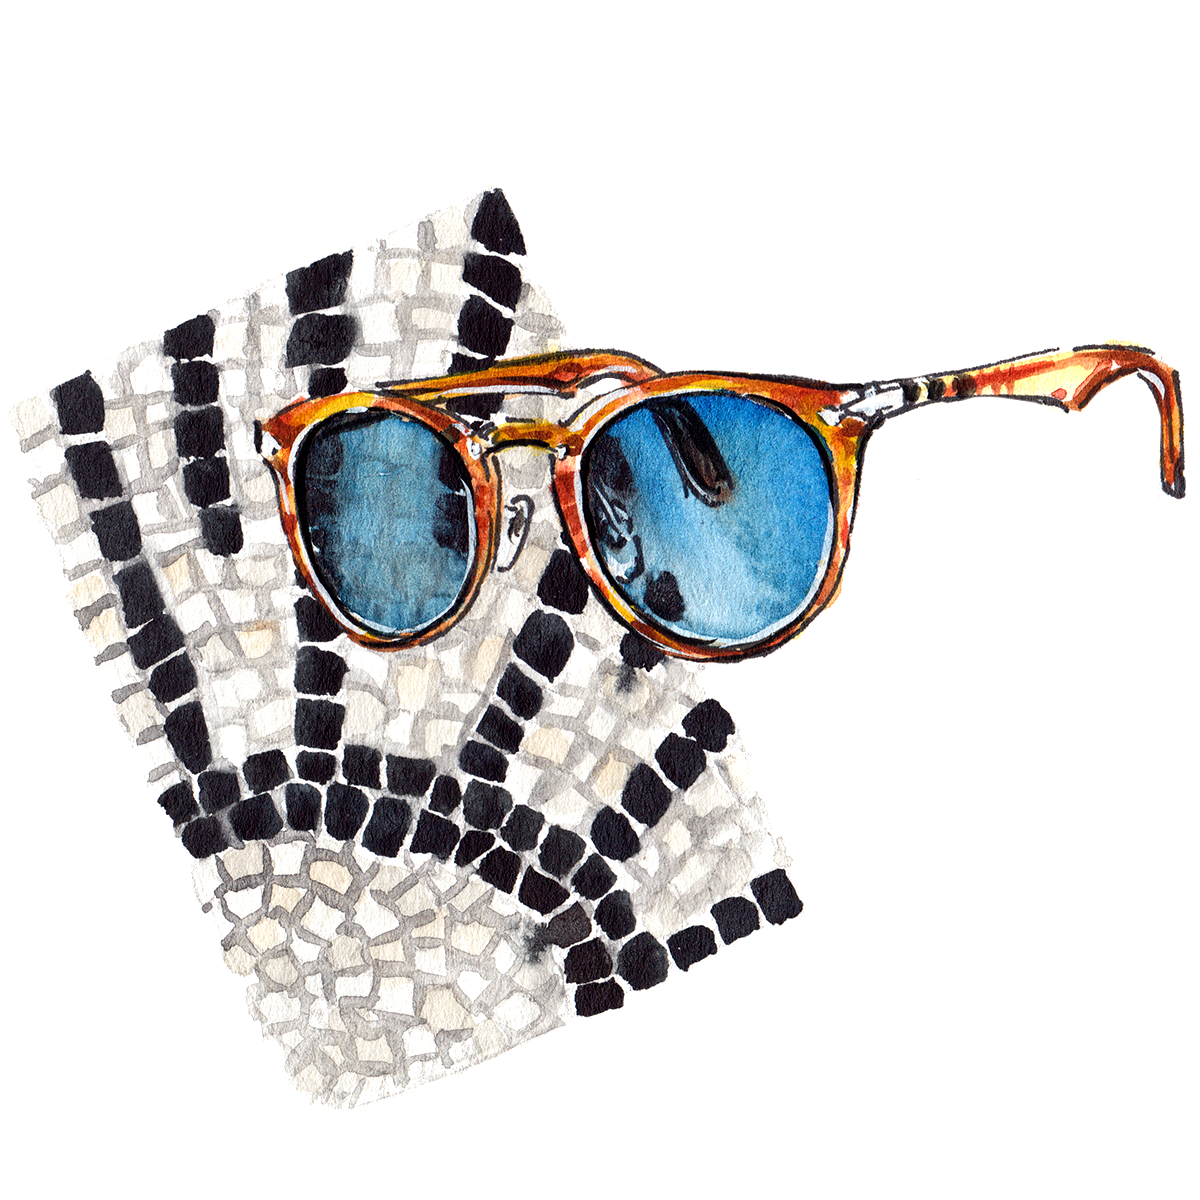 painting of Persol eyewear, with a mosaic background